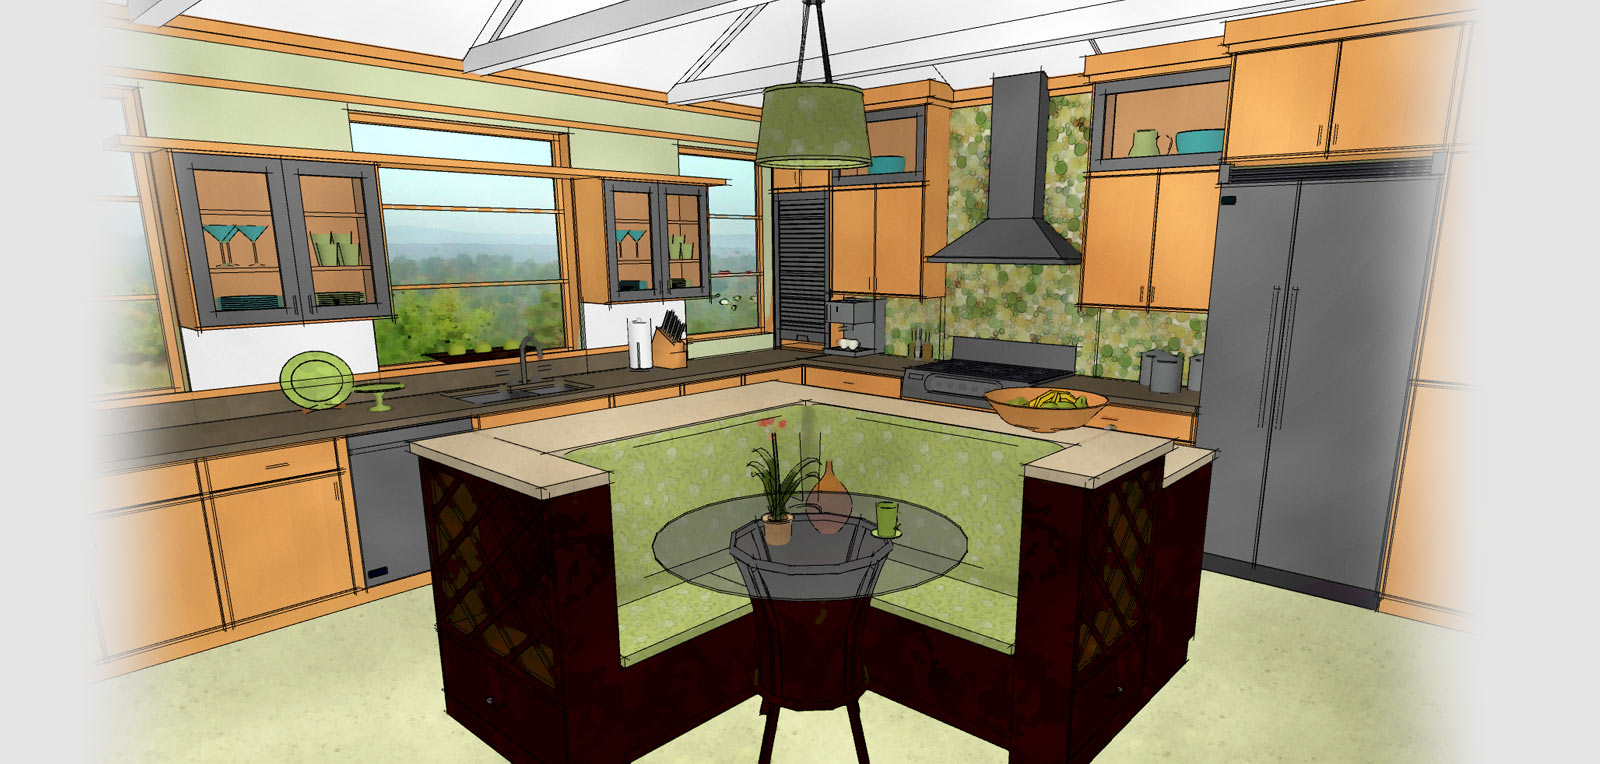 technical drawing of a kitchen generated by home designer - Design Kitchen And Bath